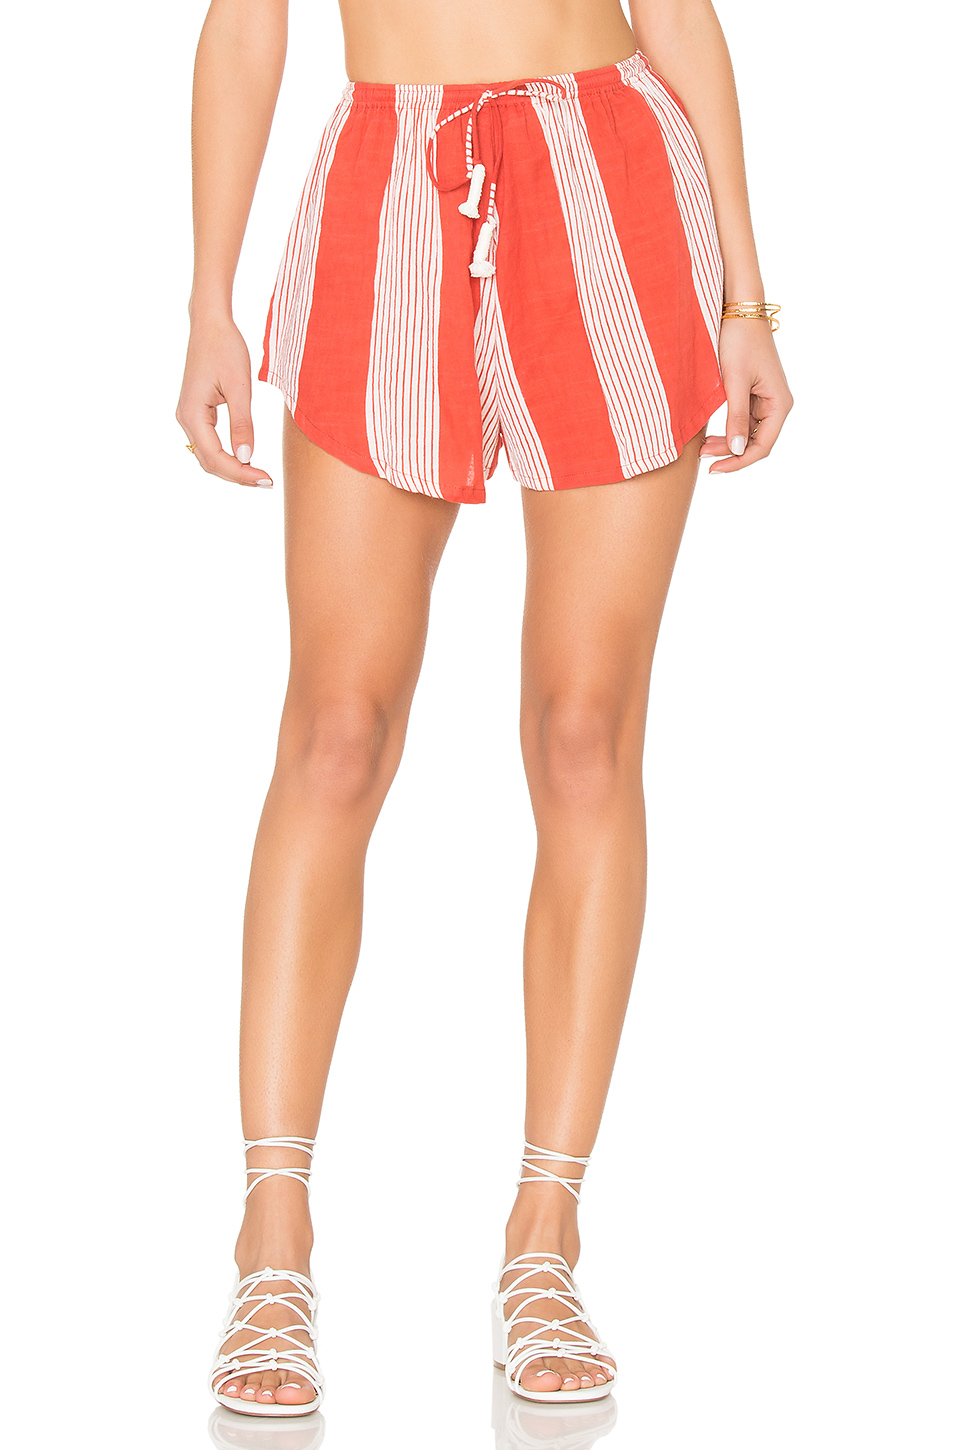 FAITHFULL THE BRAND Girona Short in Picnic Stripe Print